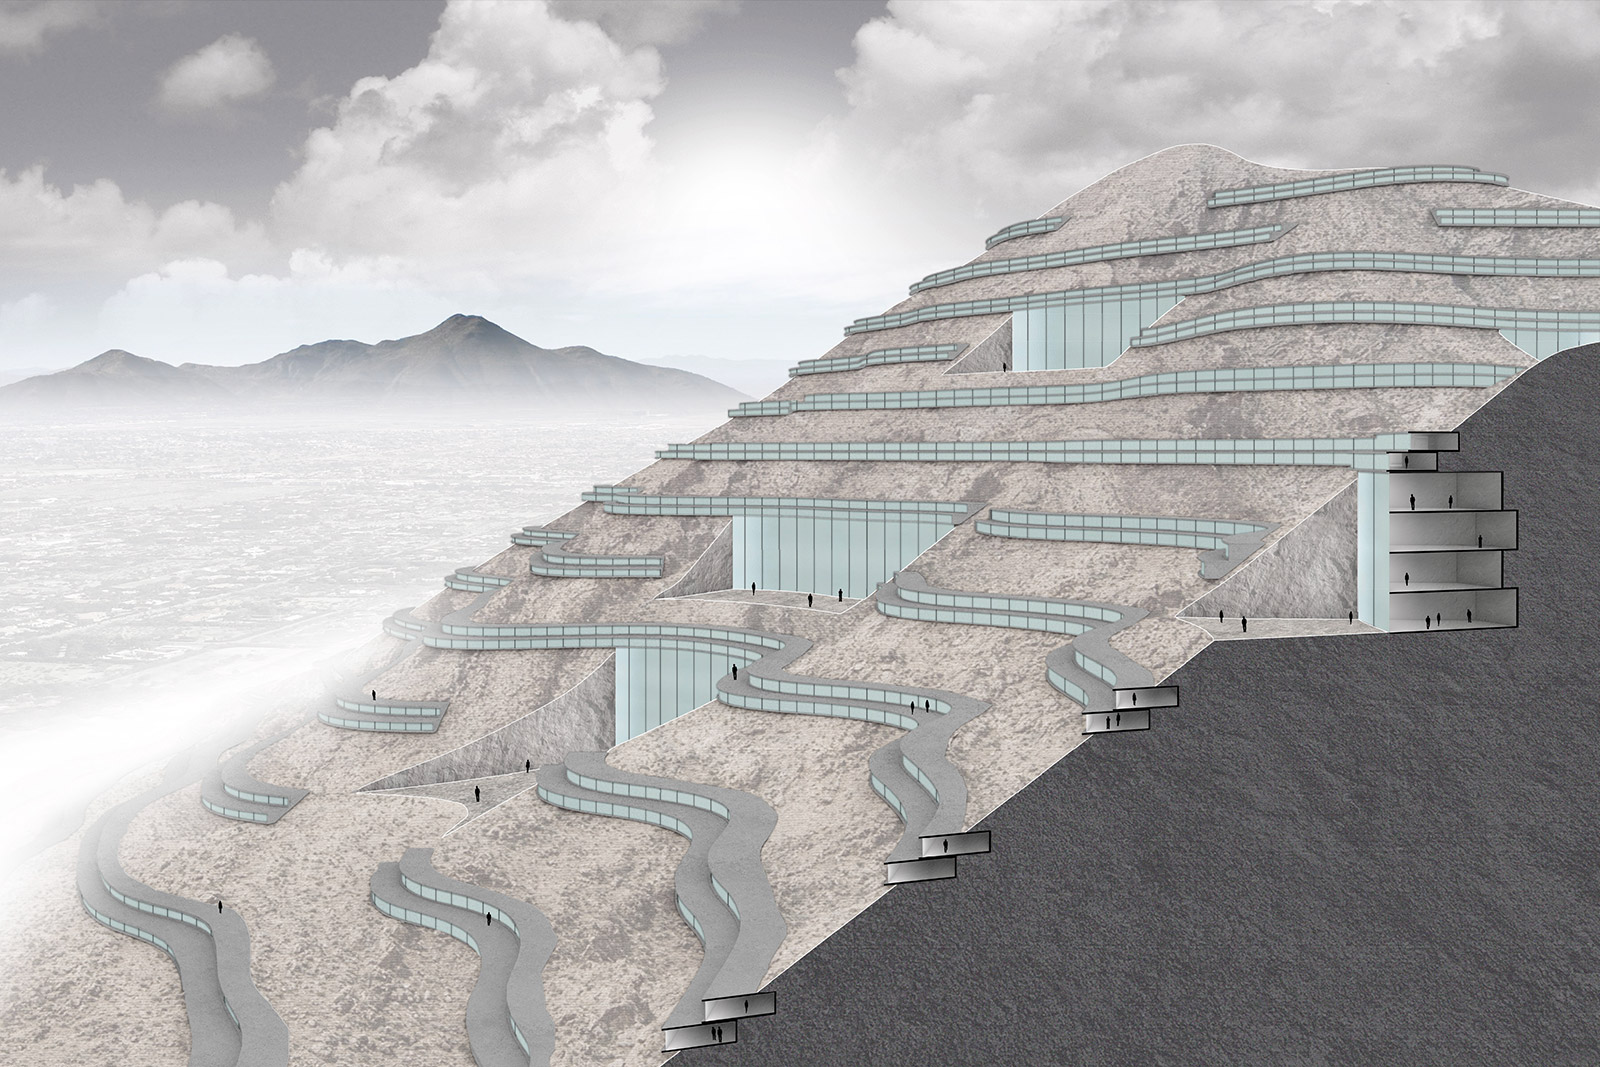 Section perspective drawing of the proposal by student Stephen Adrian for a community carved into the mountain contours